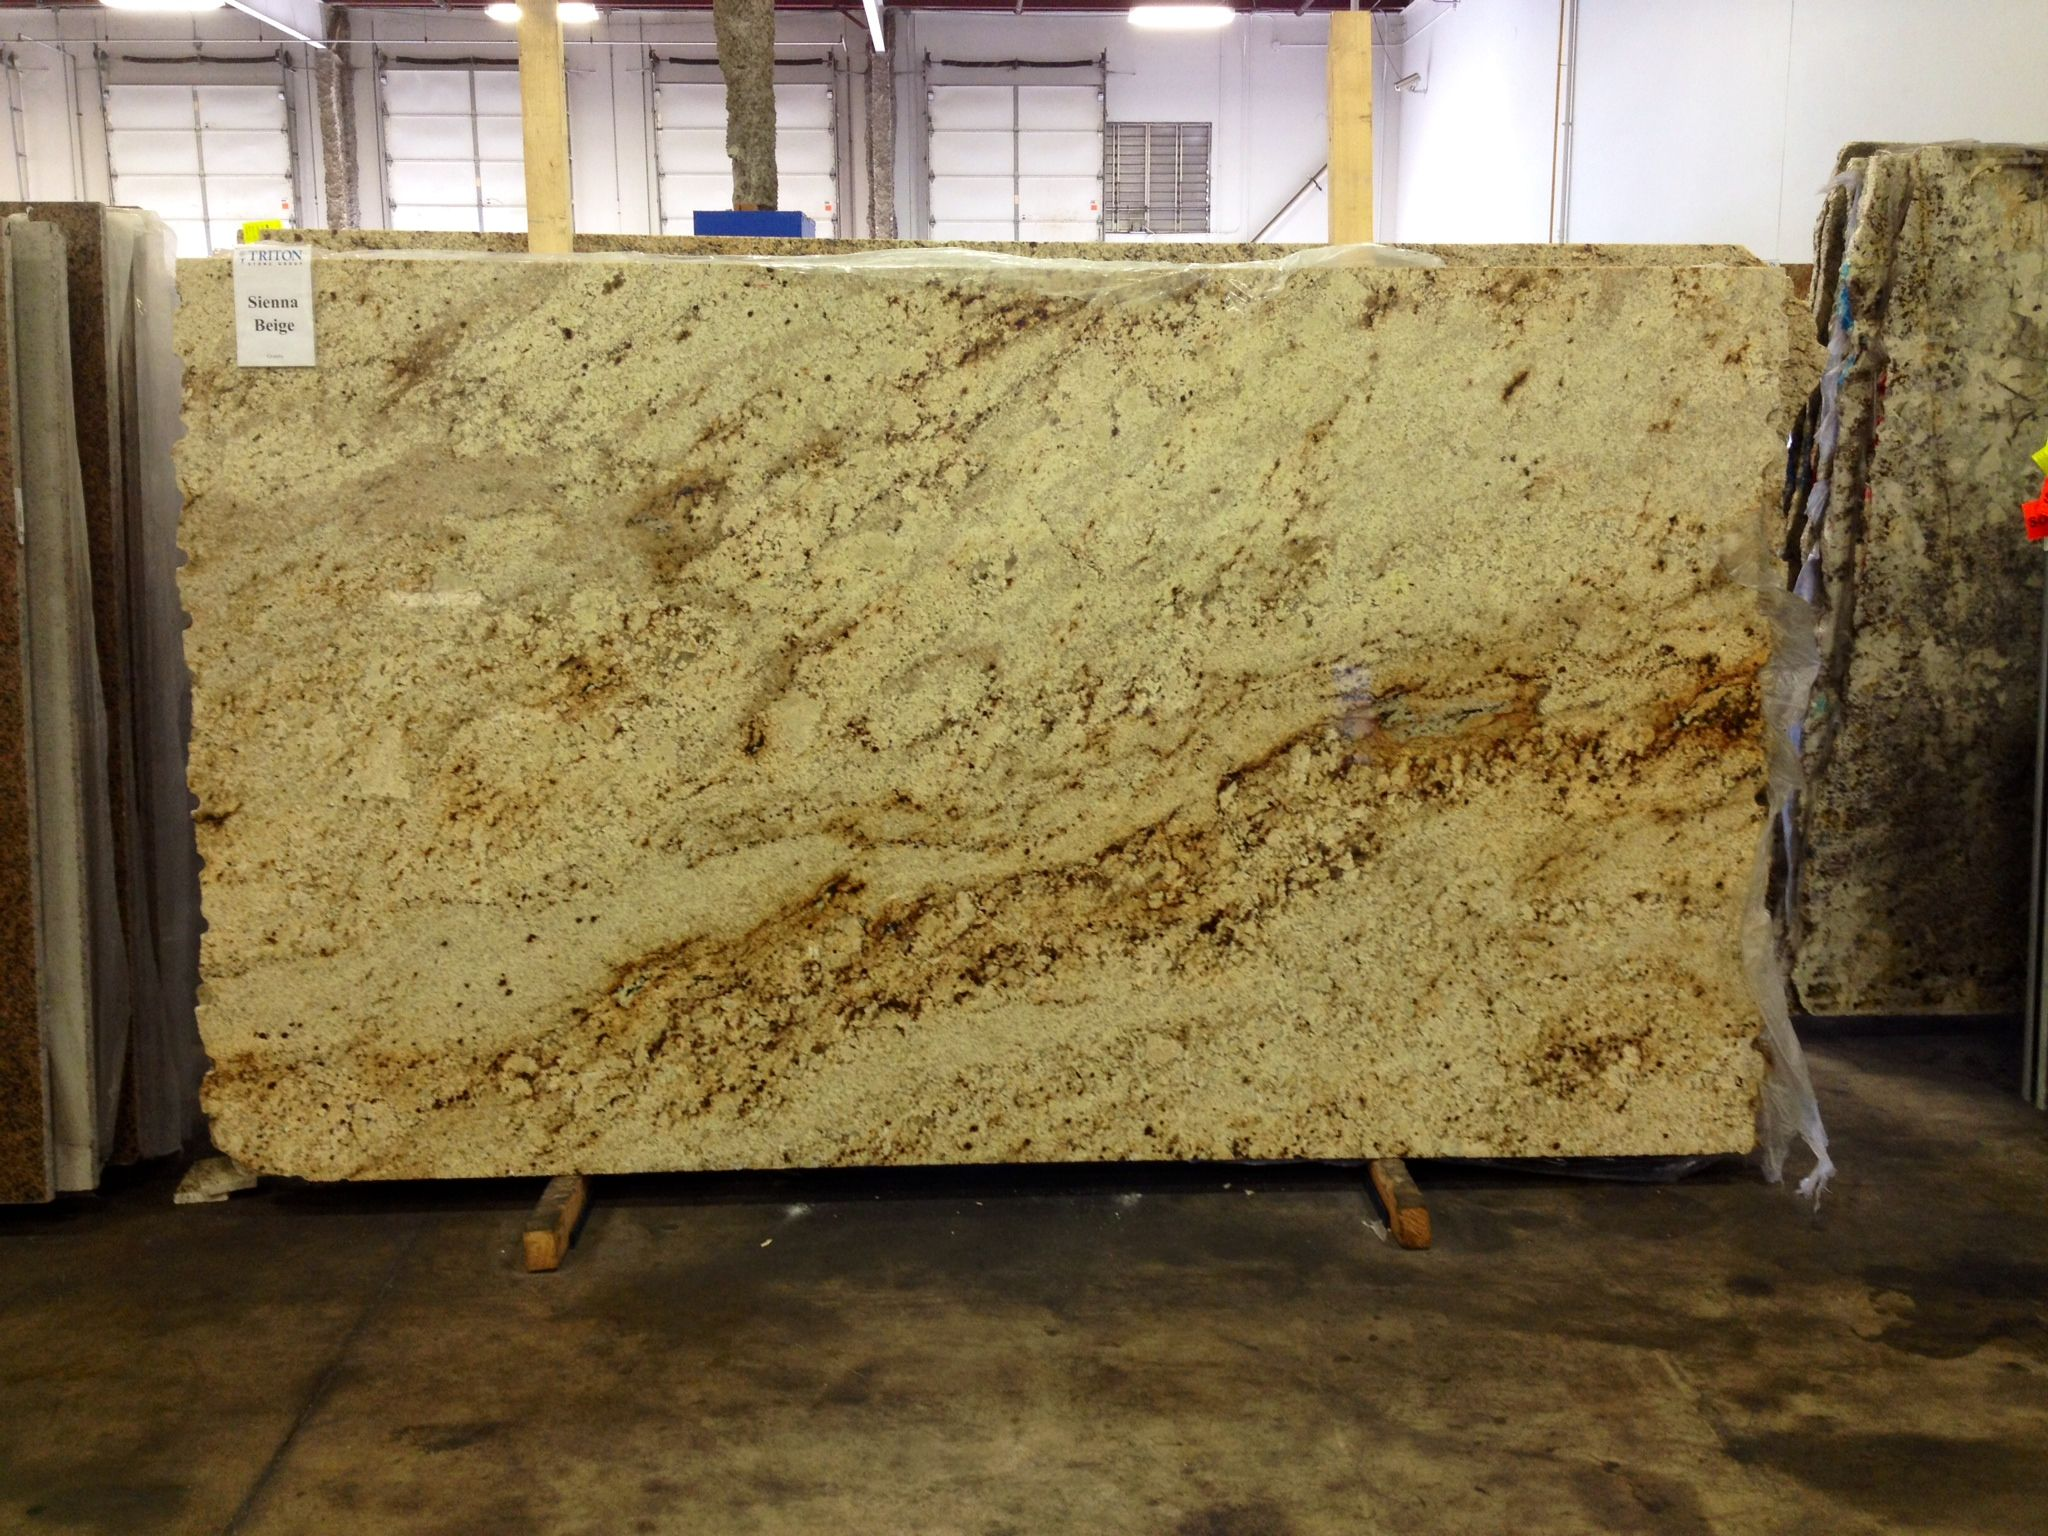 Countertops Louisville Ky Sienna Beige Granite Contact Jennifer Ware Stone Group